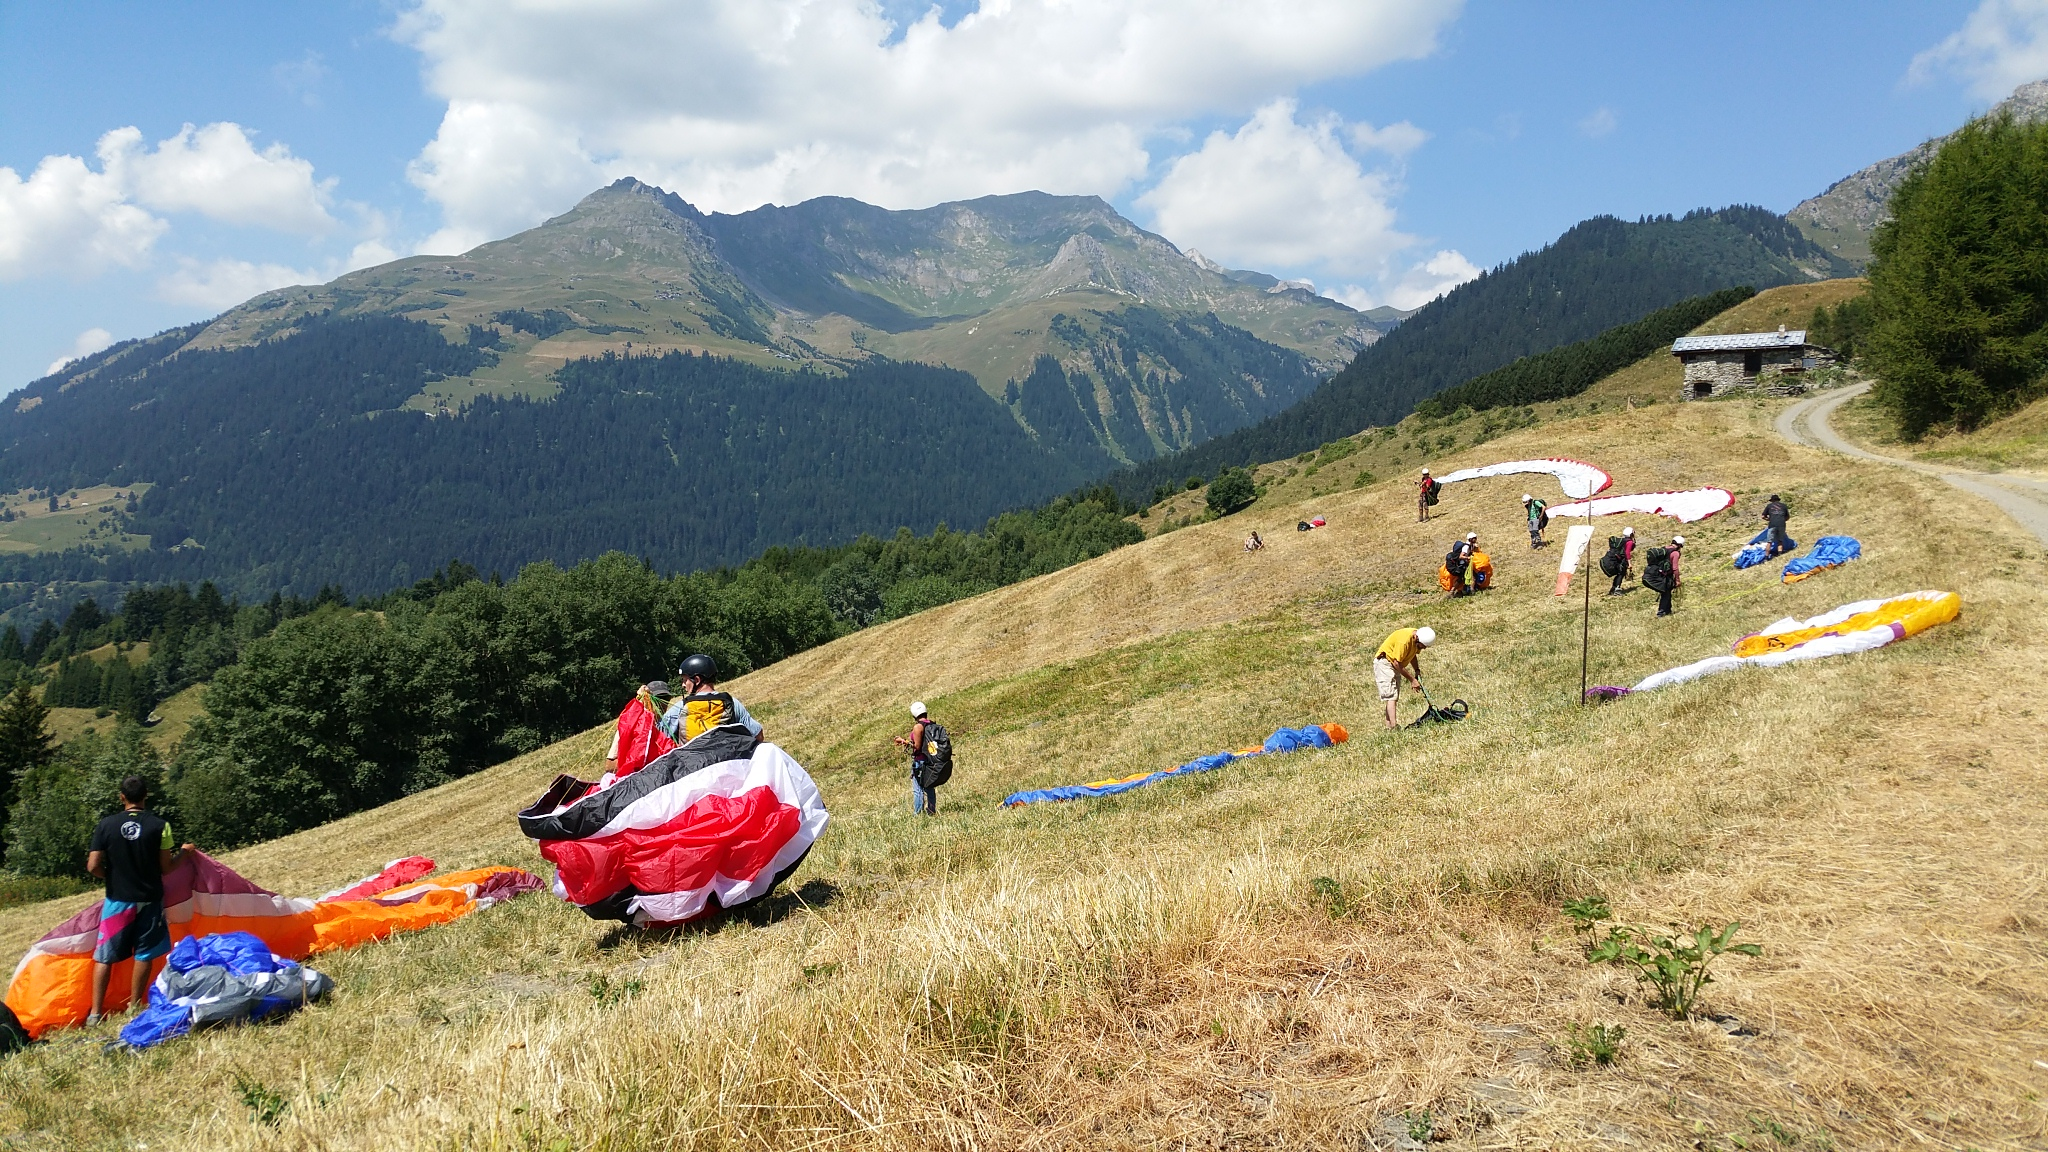 Unbelievable July month for paragliding. 11